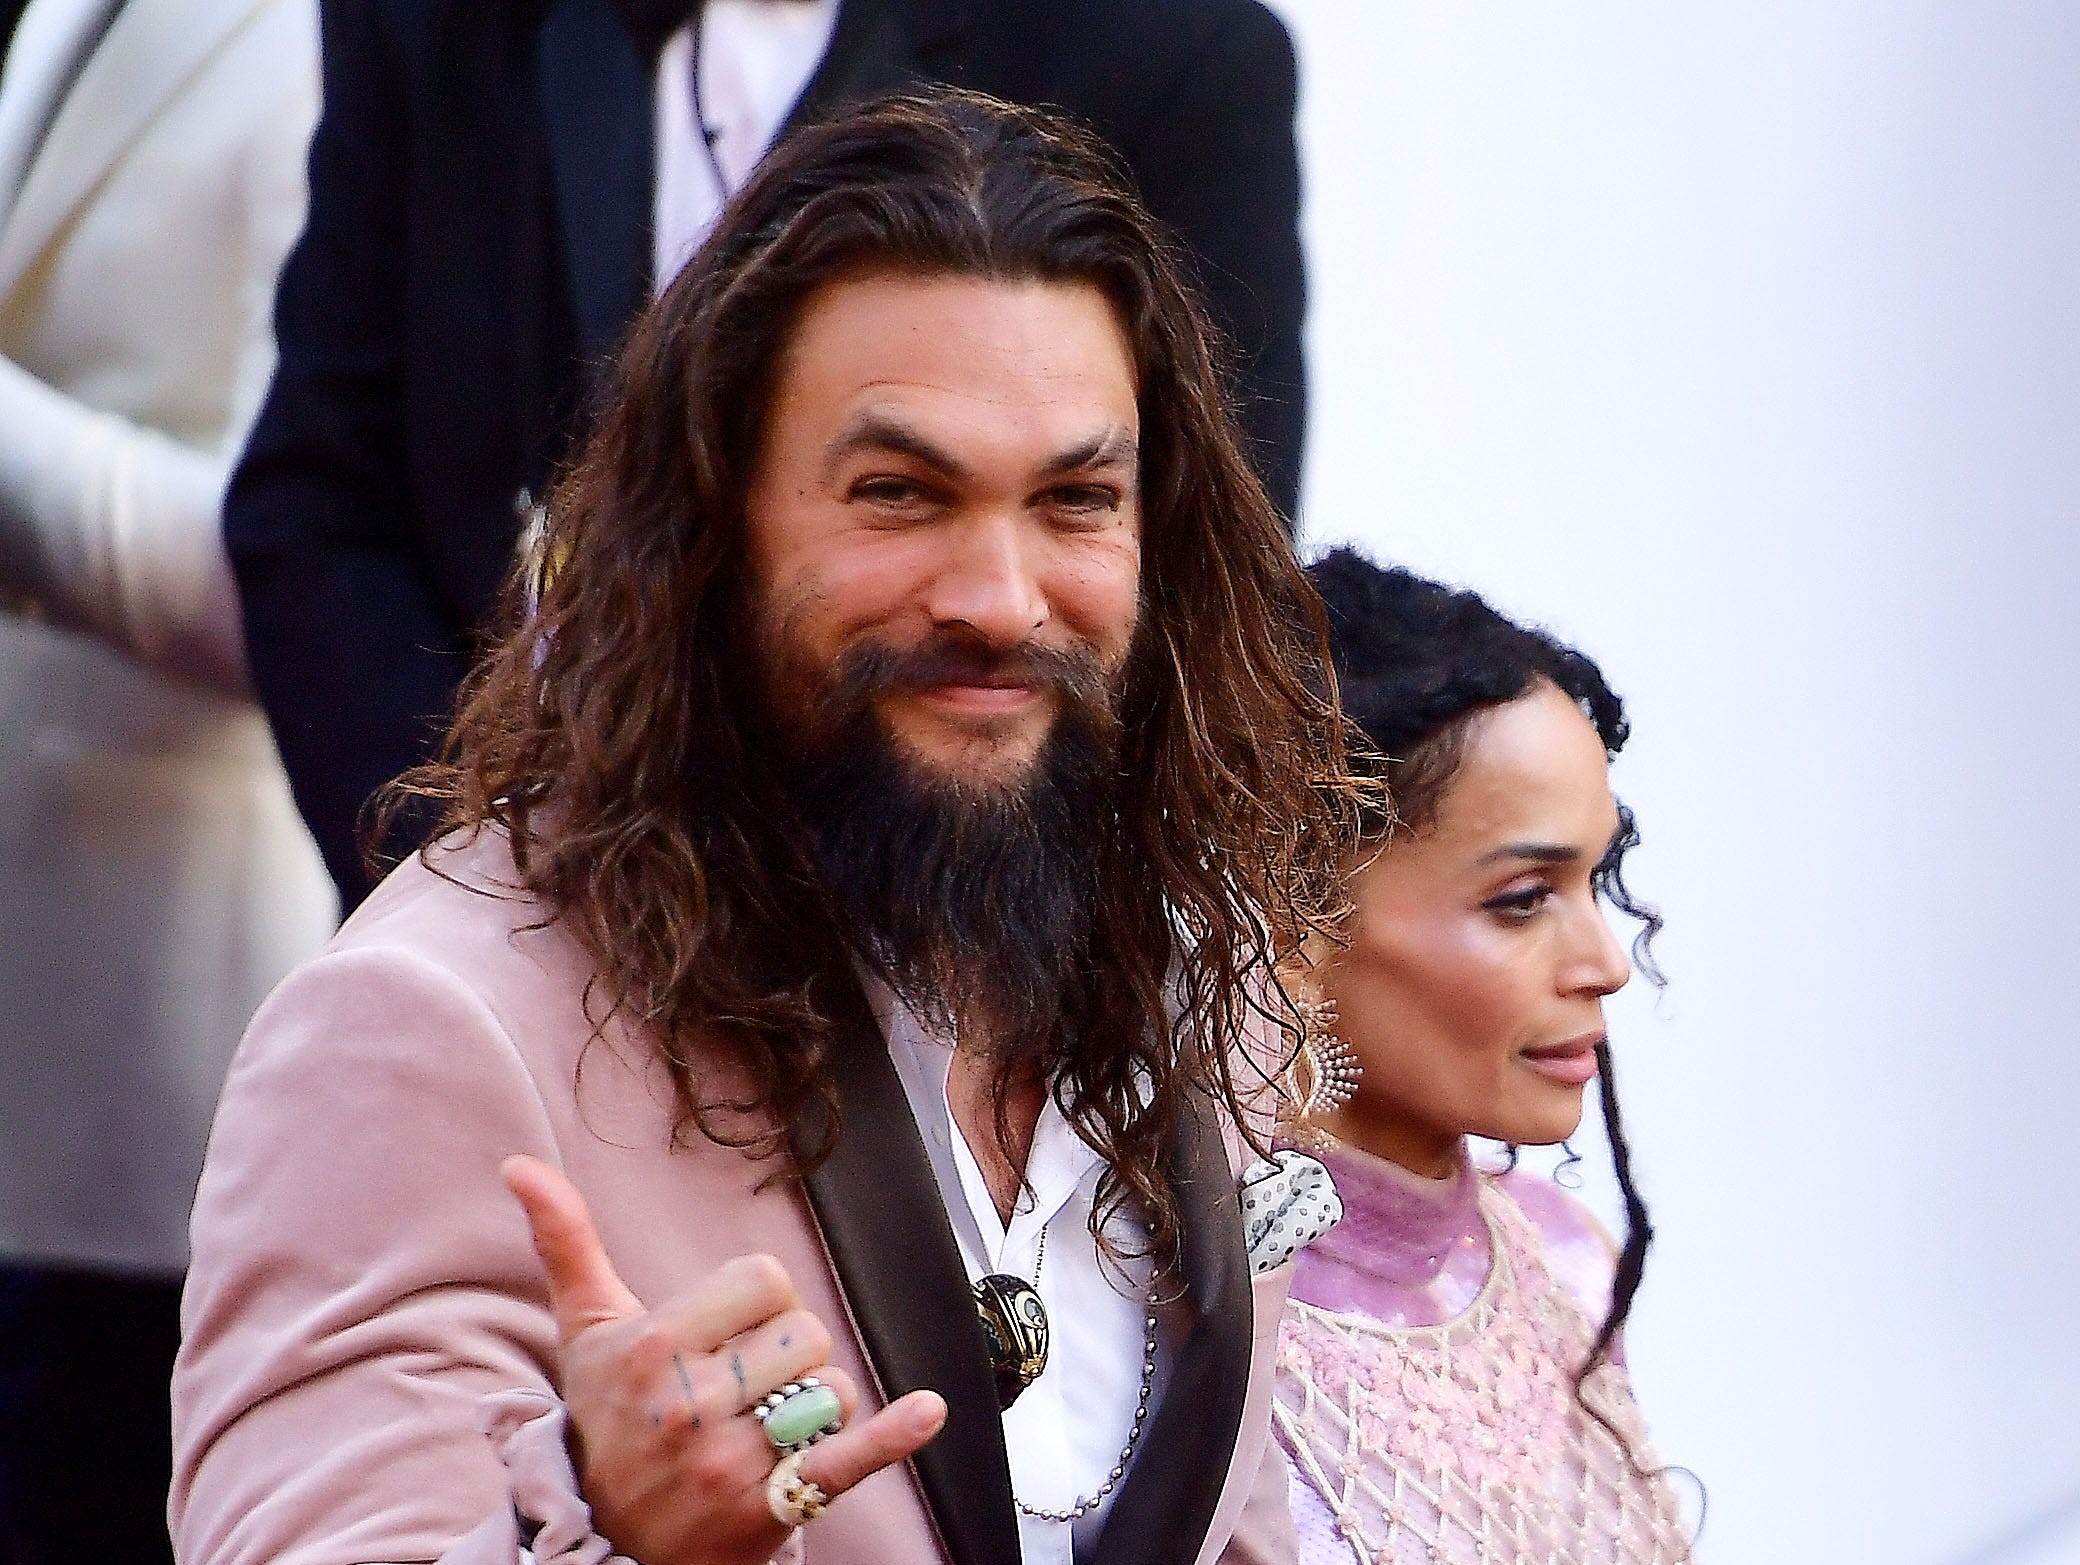 Jason Momoa and Lisa Bonet attend the 91st Annual Academy Awards at Hollywood and Highland on February 24, 2019 in Hollywood, California.